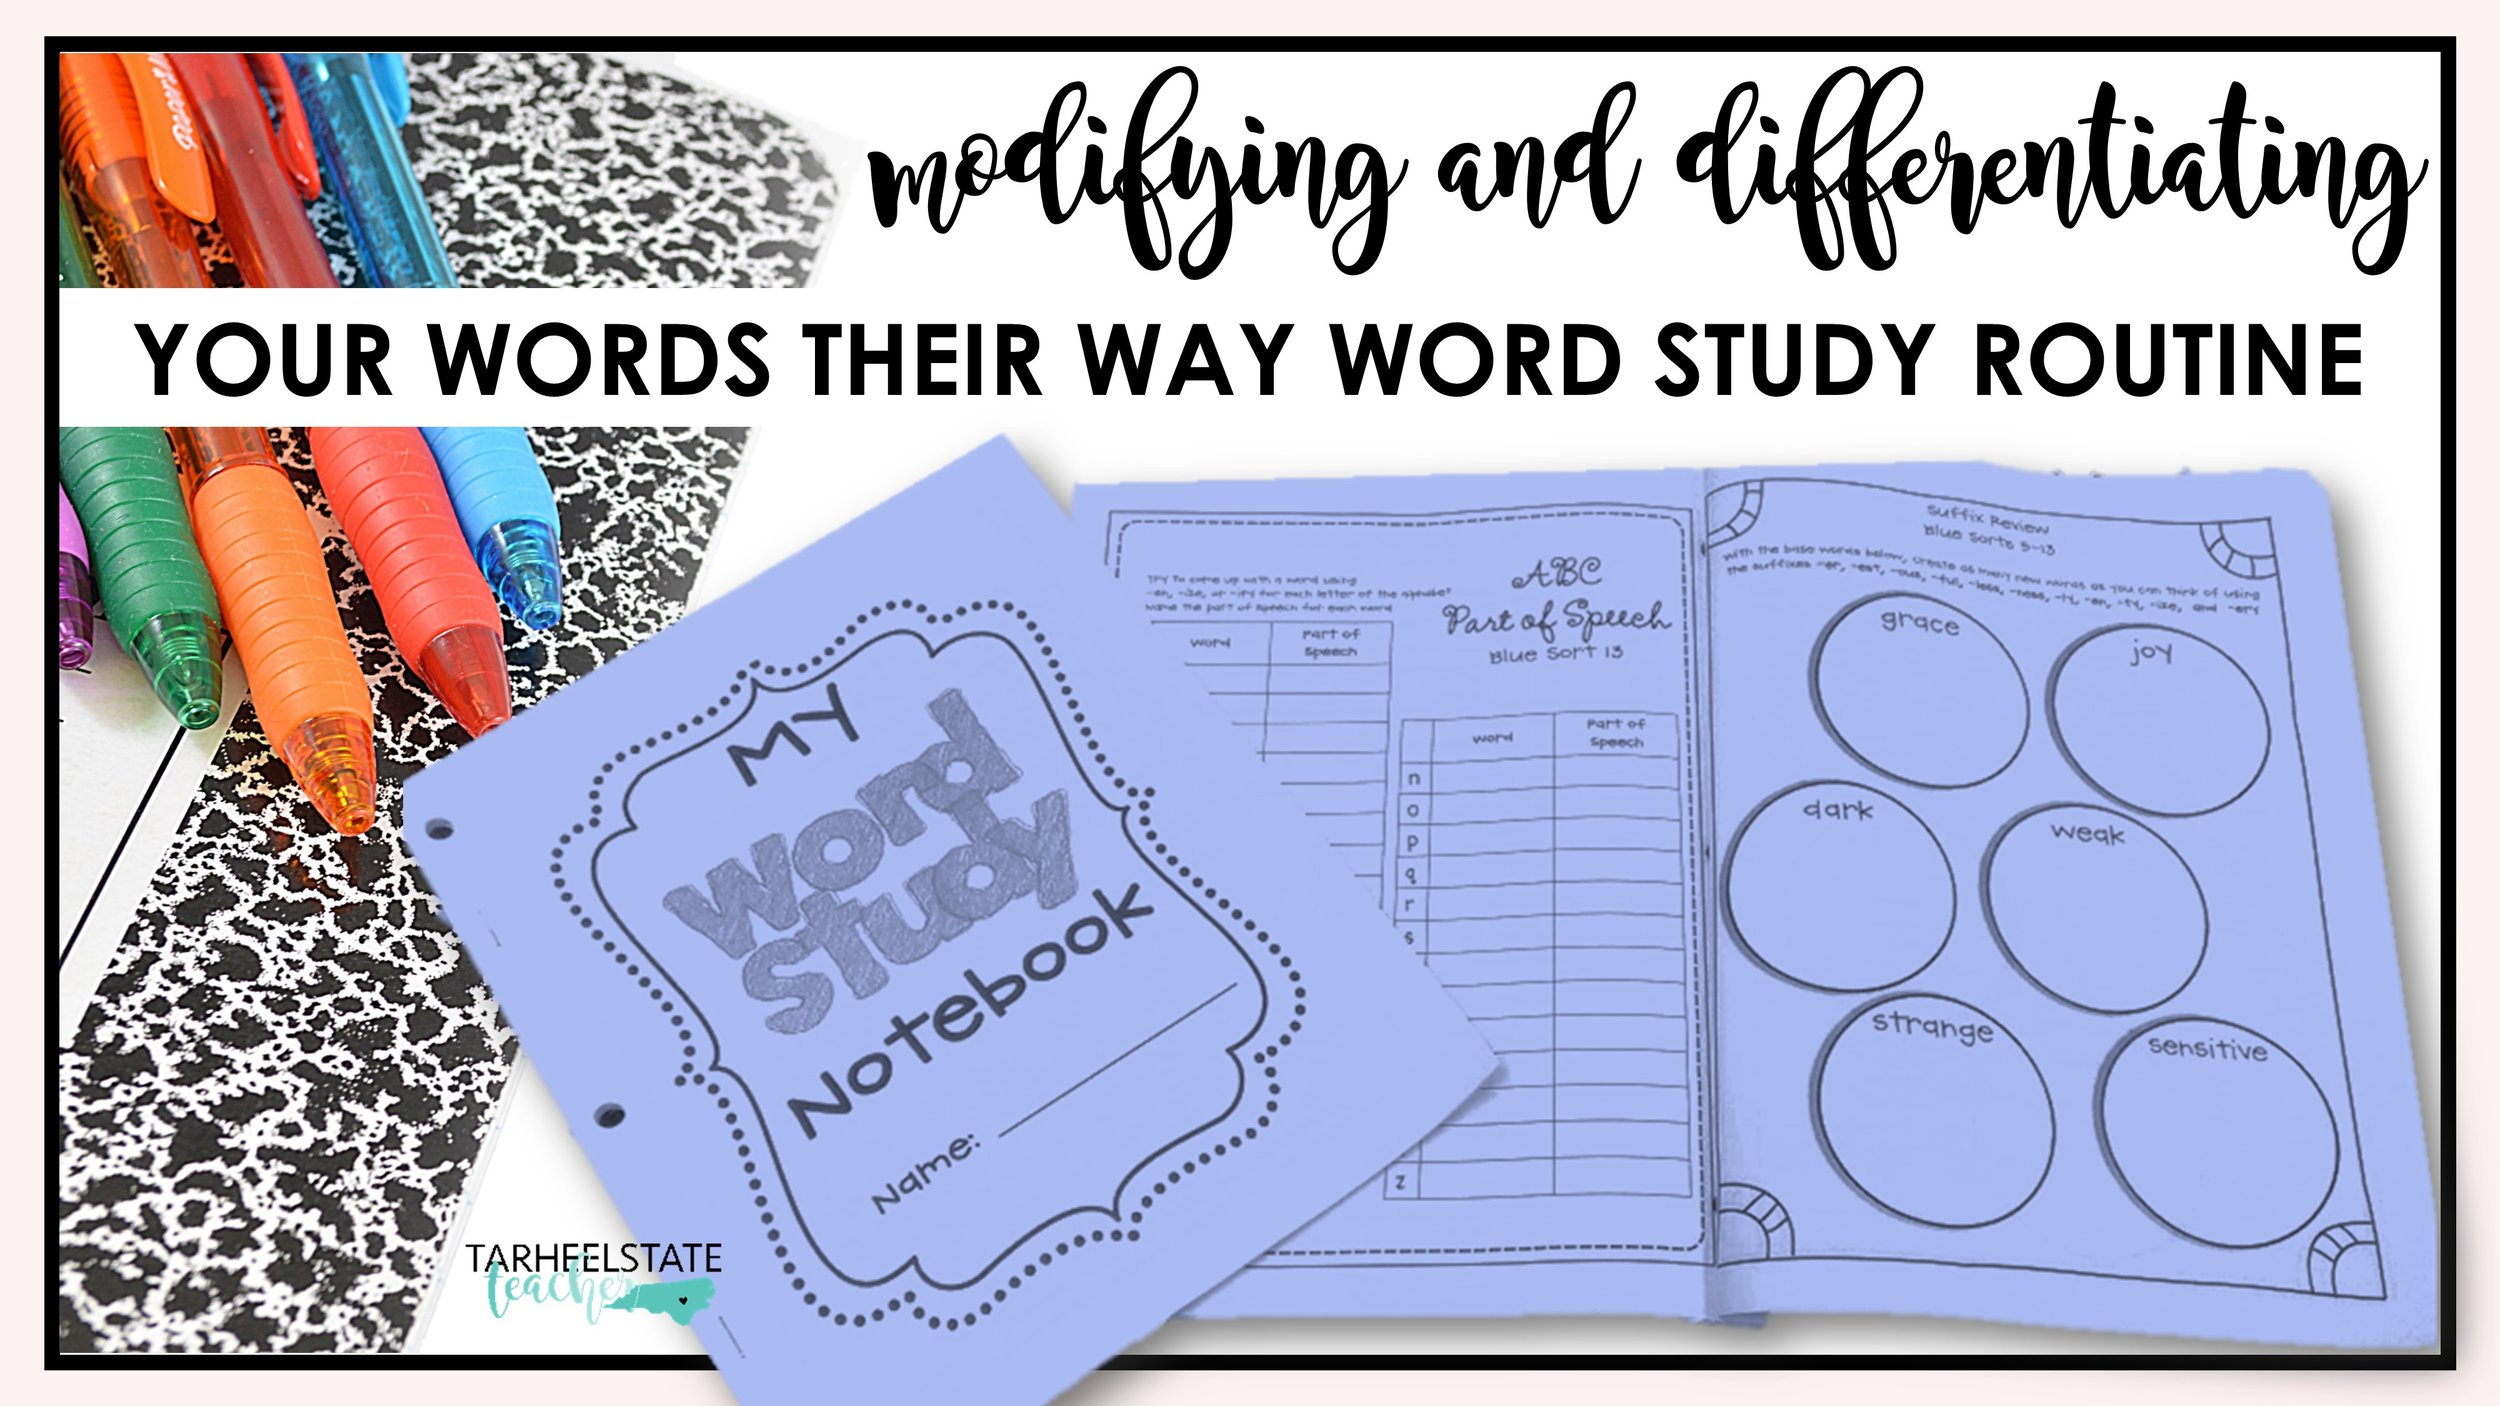 Modifying and differentiating your words their way word study routine.JPG